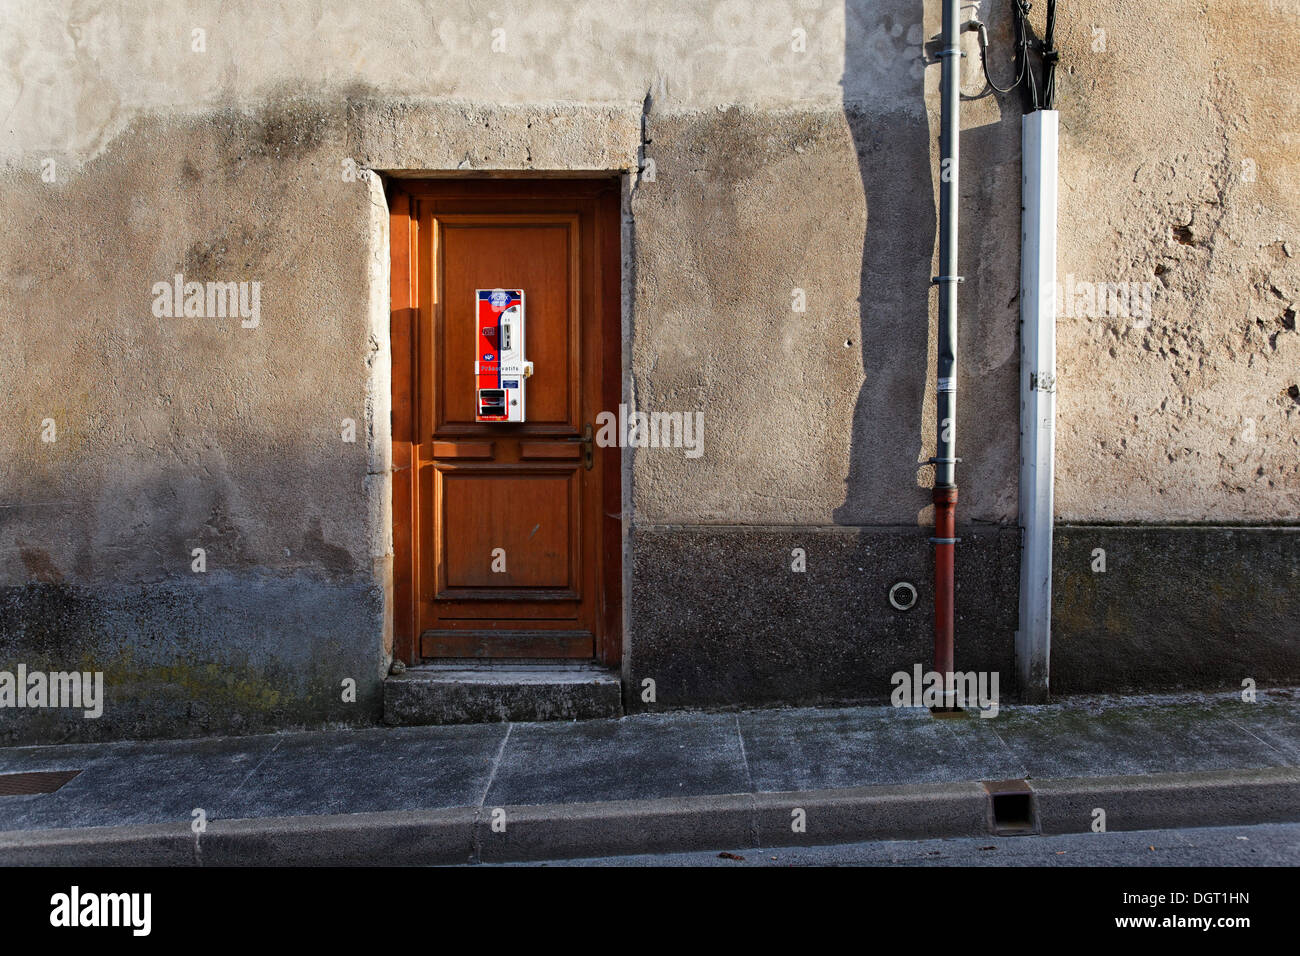 Condom vending machine on the door of a house, historic town centre of Langres, department of Haute-Marne - Stock Image